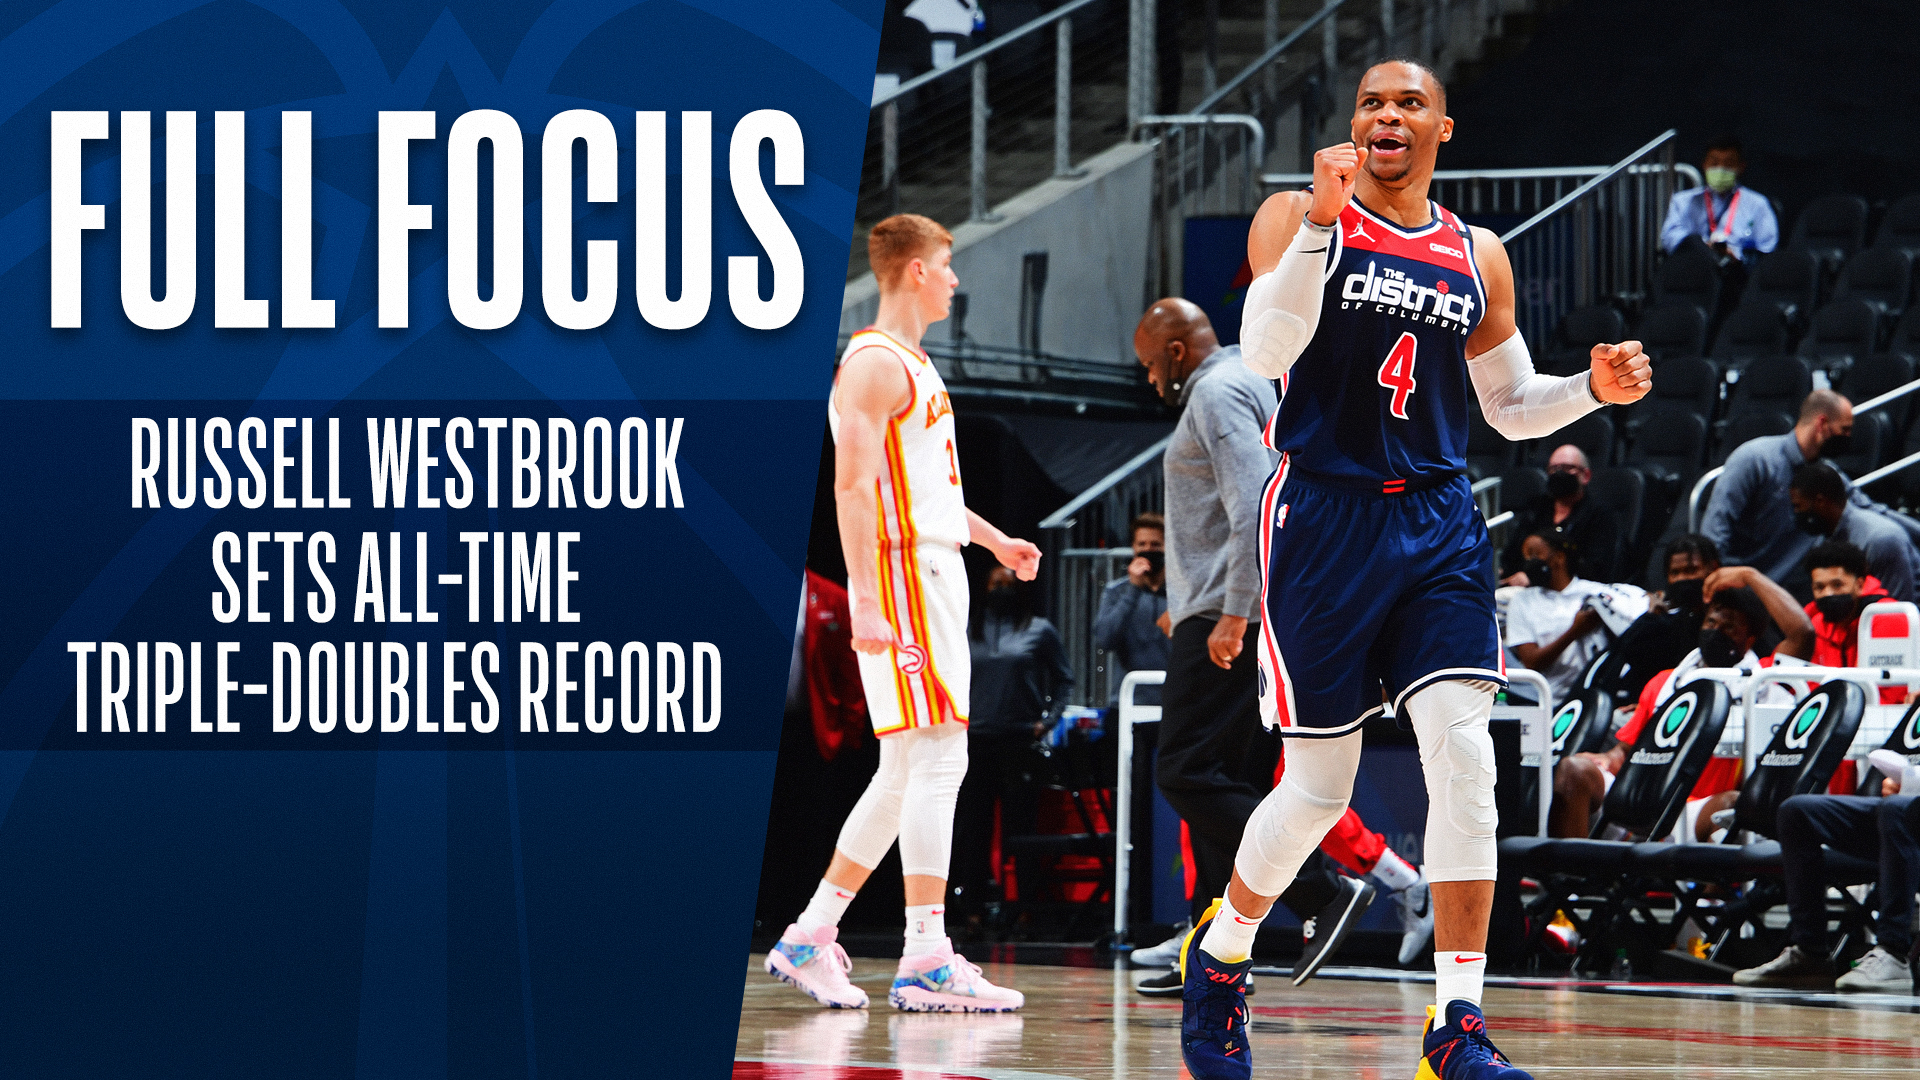 Full Focus: Westbrook becomes the all-time triple-double leader